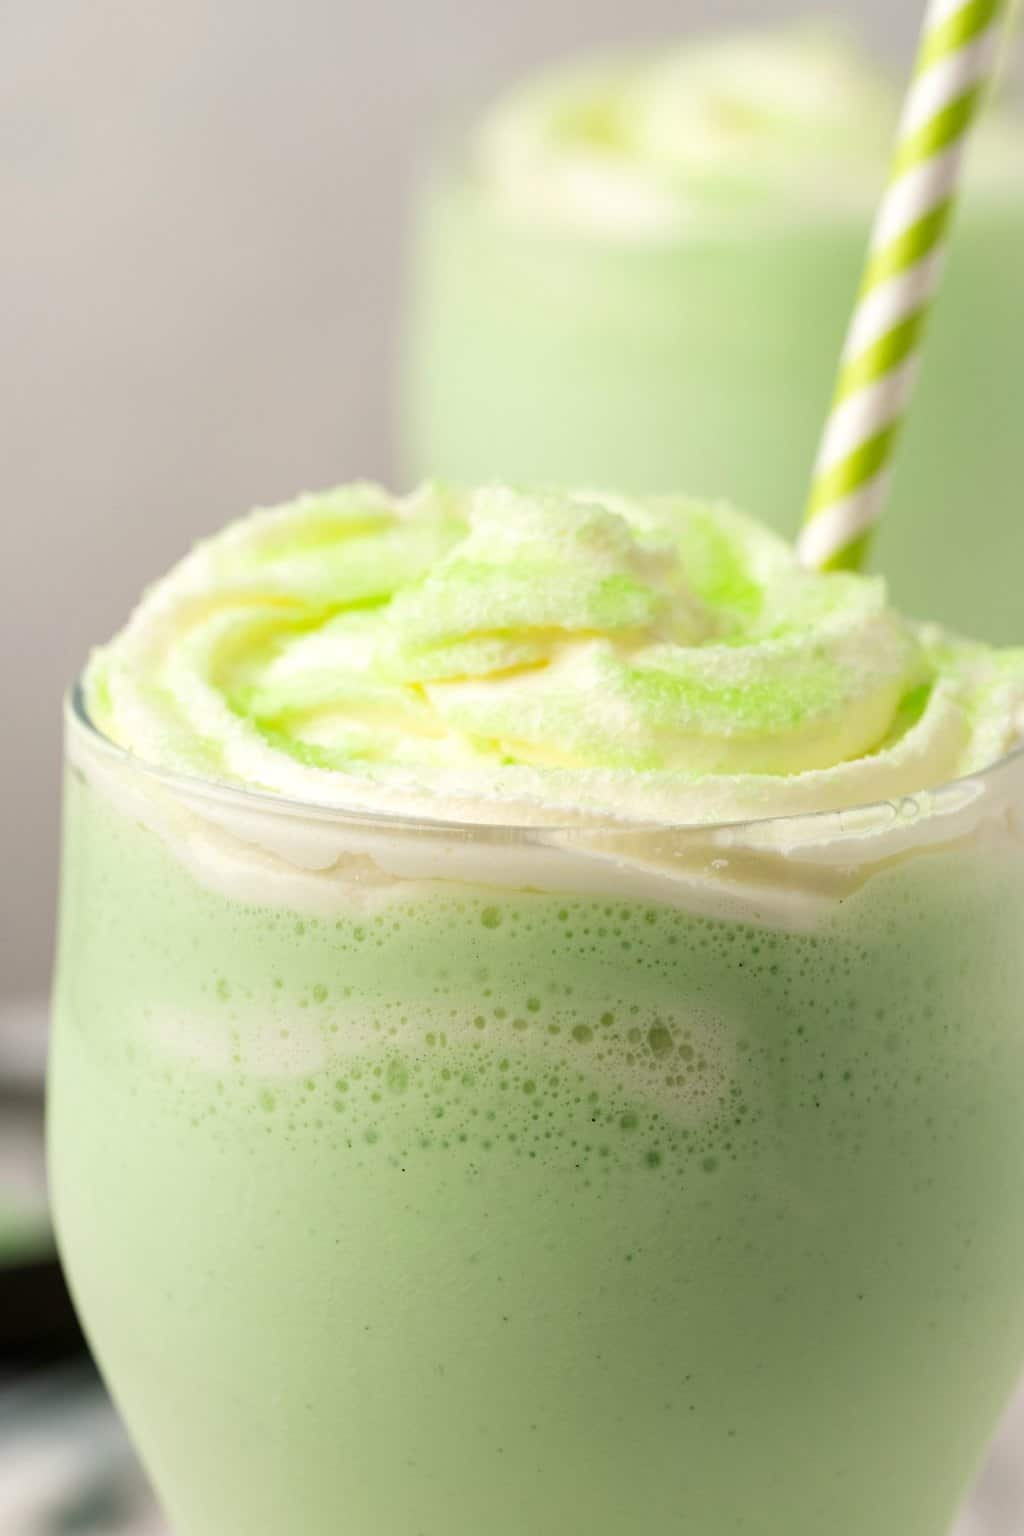 Vegan shamrock shake in a tall glass with whipped cream and green sanding sugar.